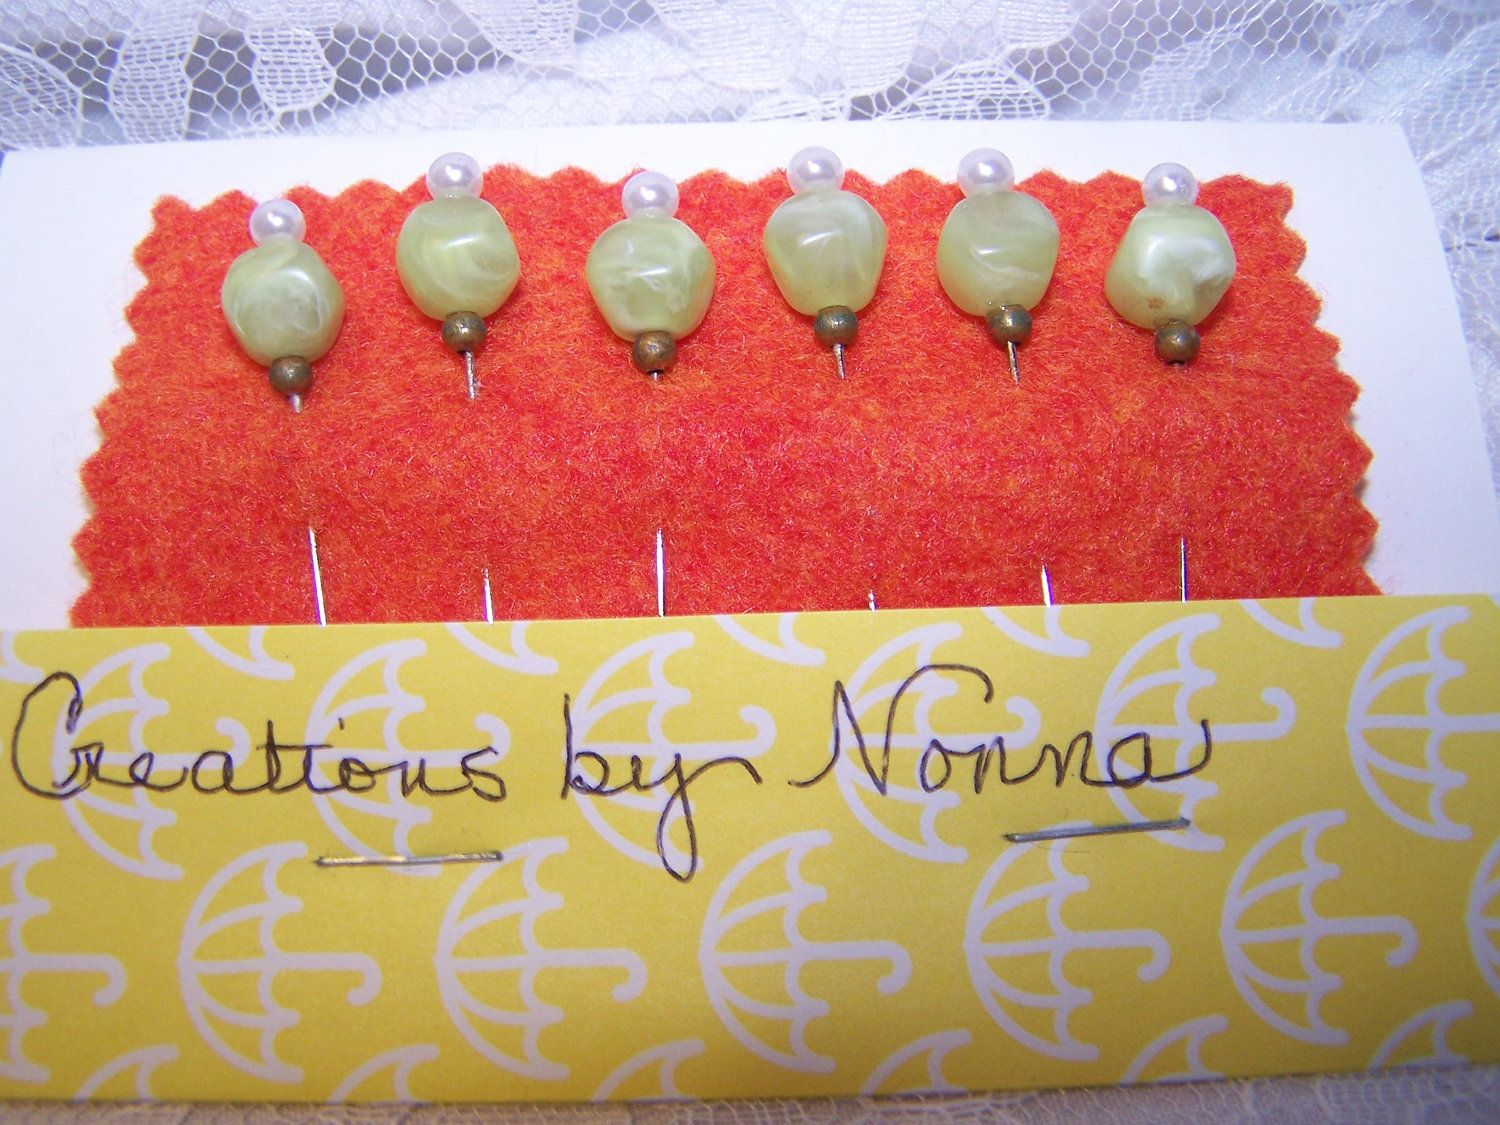 Decorative Stick Pins for Scrapbooking, Corsage, Cardmaking, Cork Memo Board. $3.00, via Etsy.